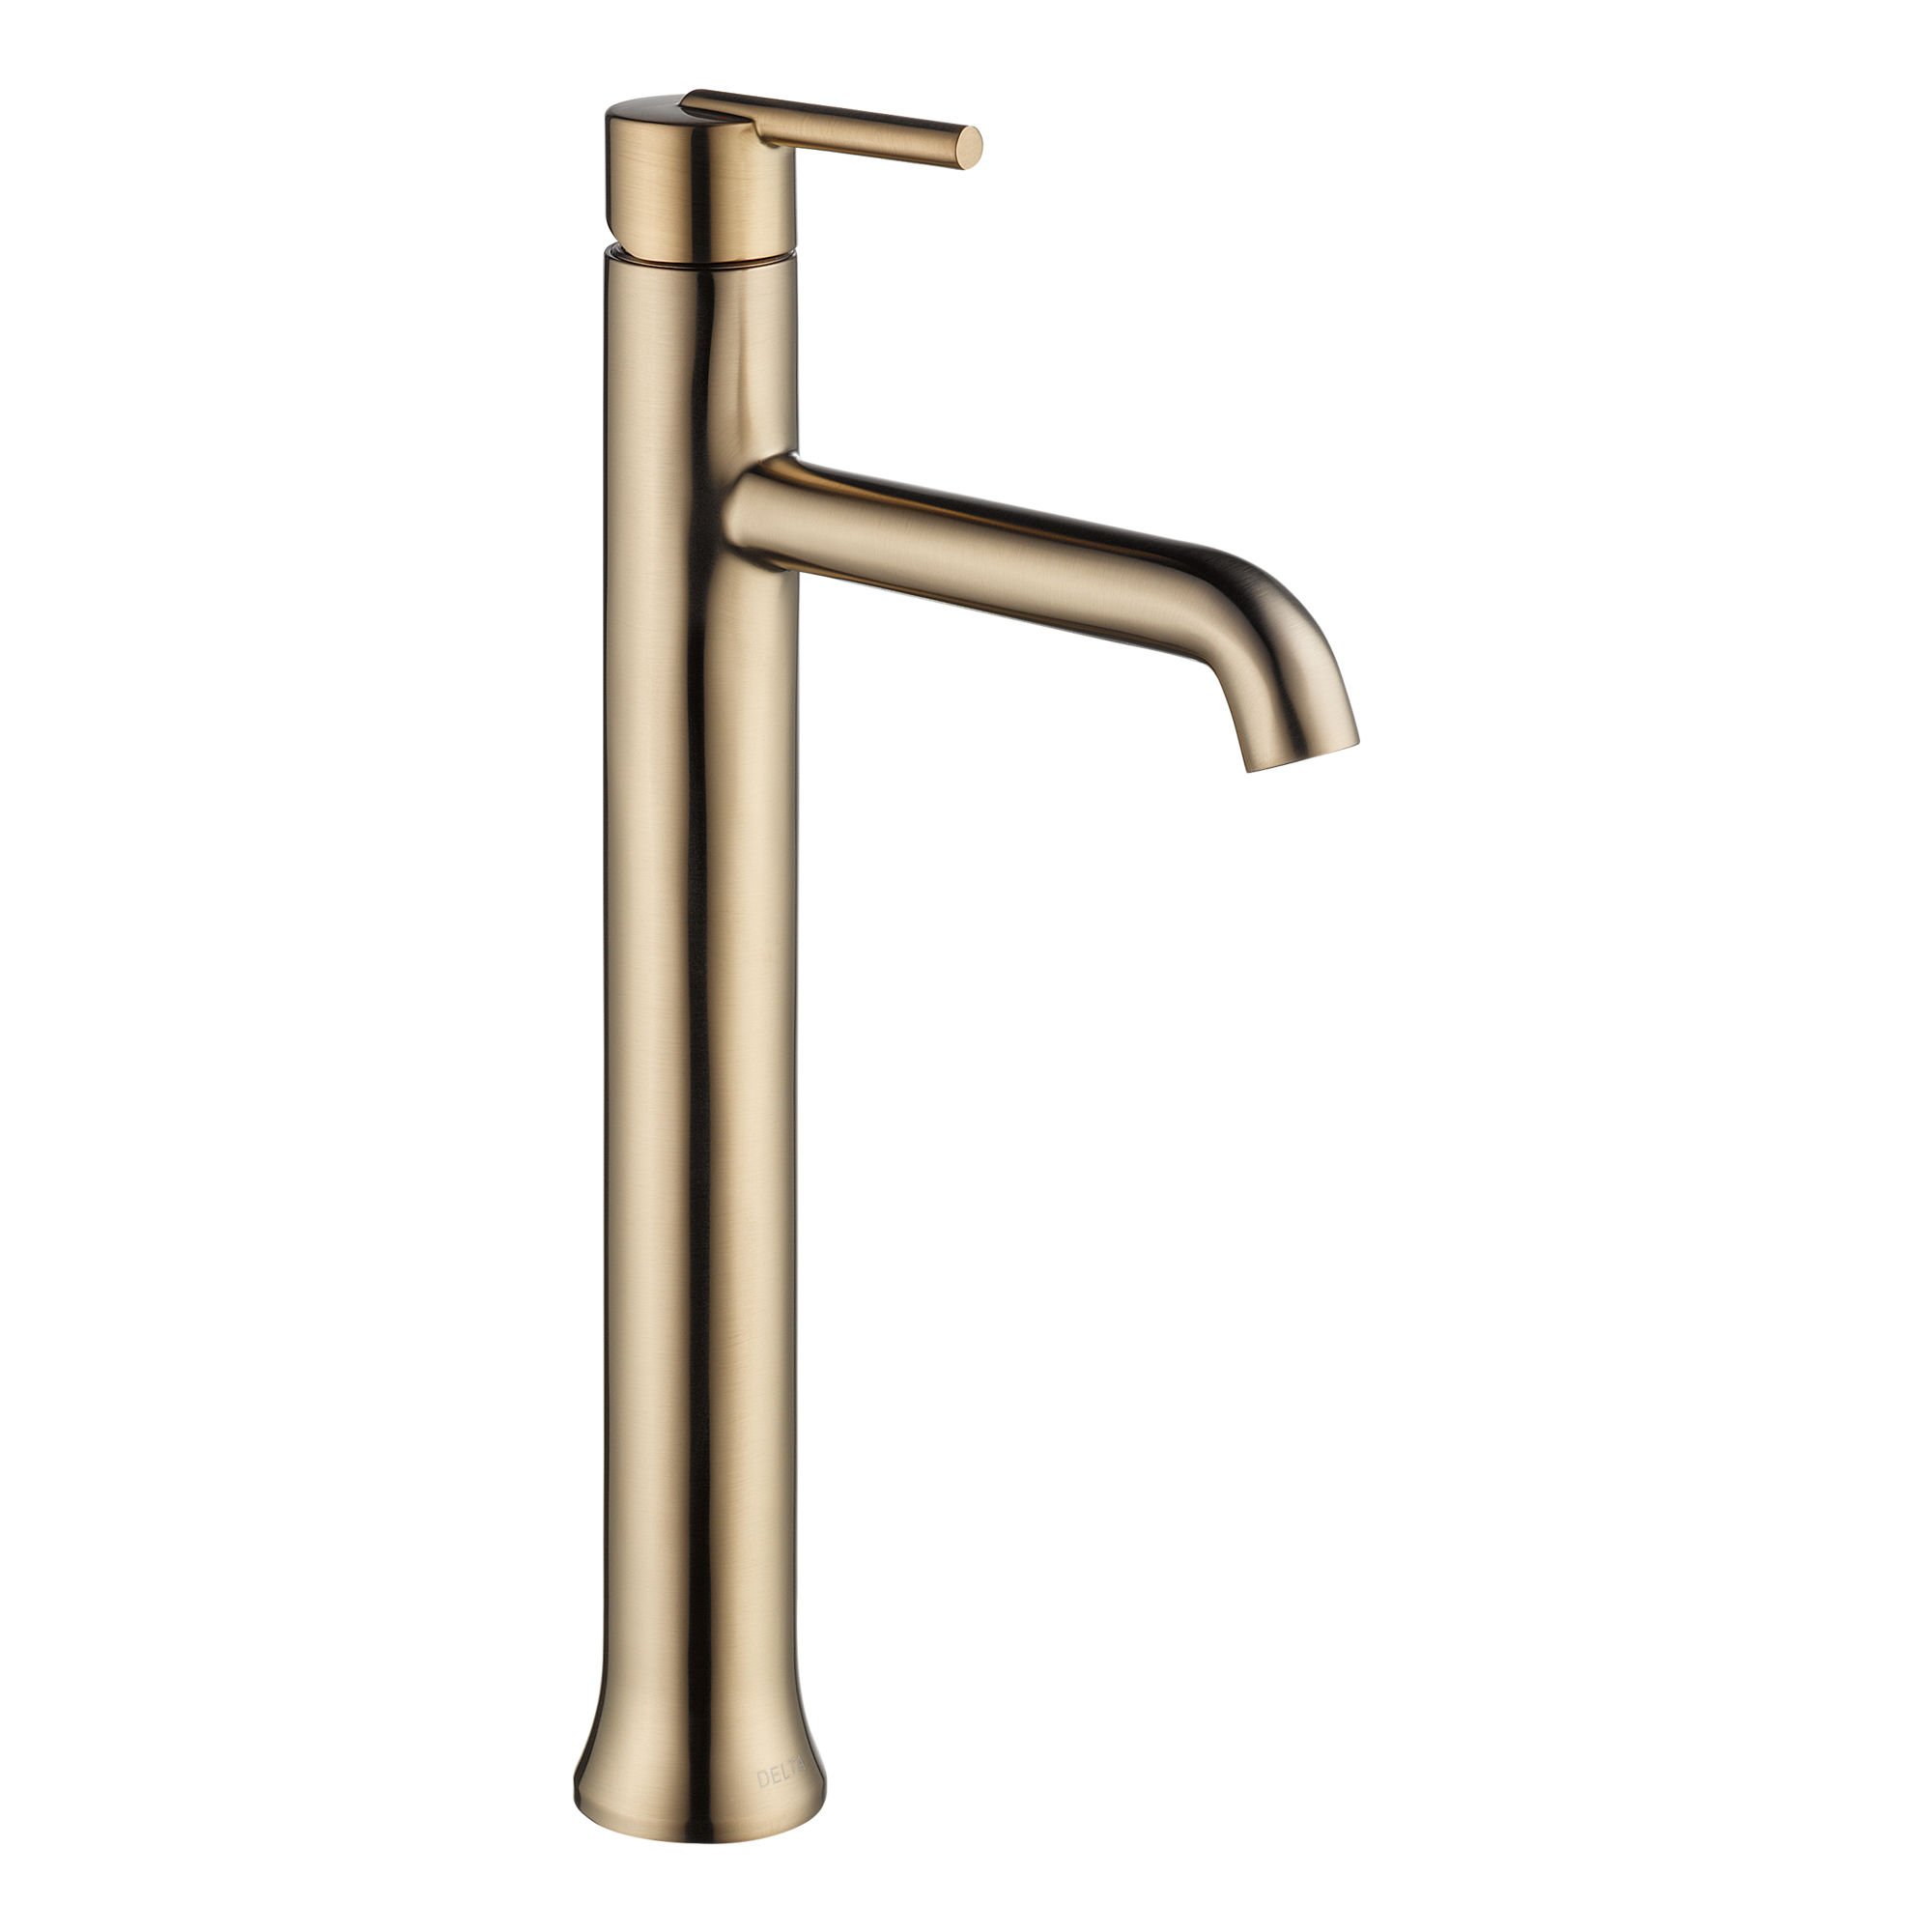 bronze faucet or bathroom vessel faucets products tru of single bar best premier copper handle